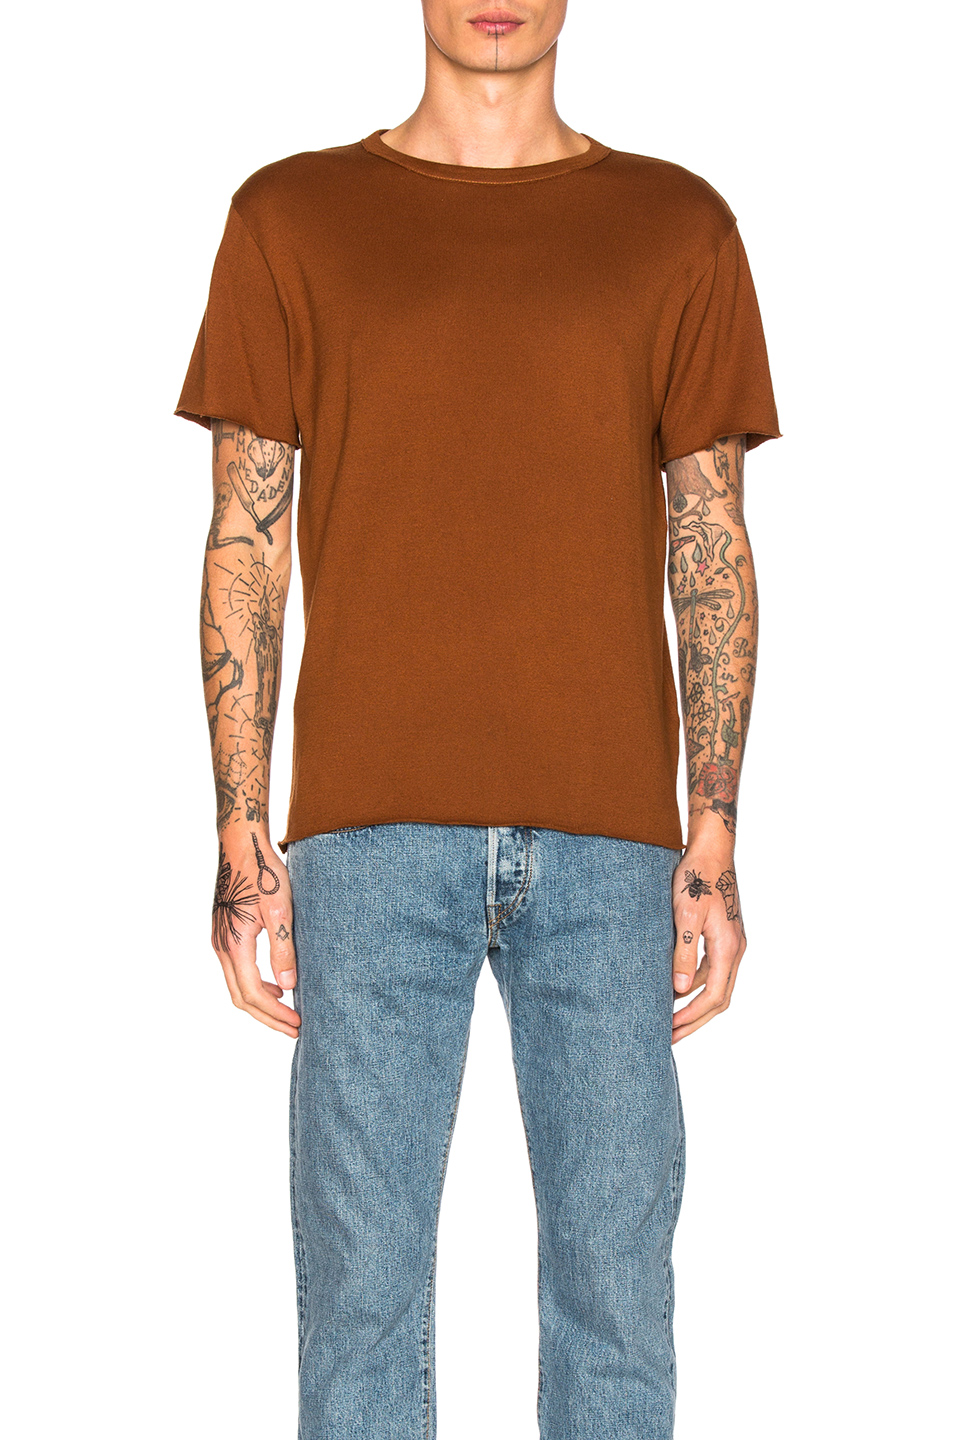 Simon Miller Alameda T-Shirt in Brown,Neutrals